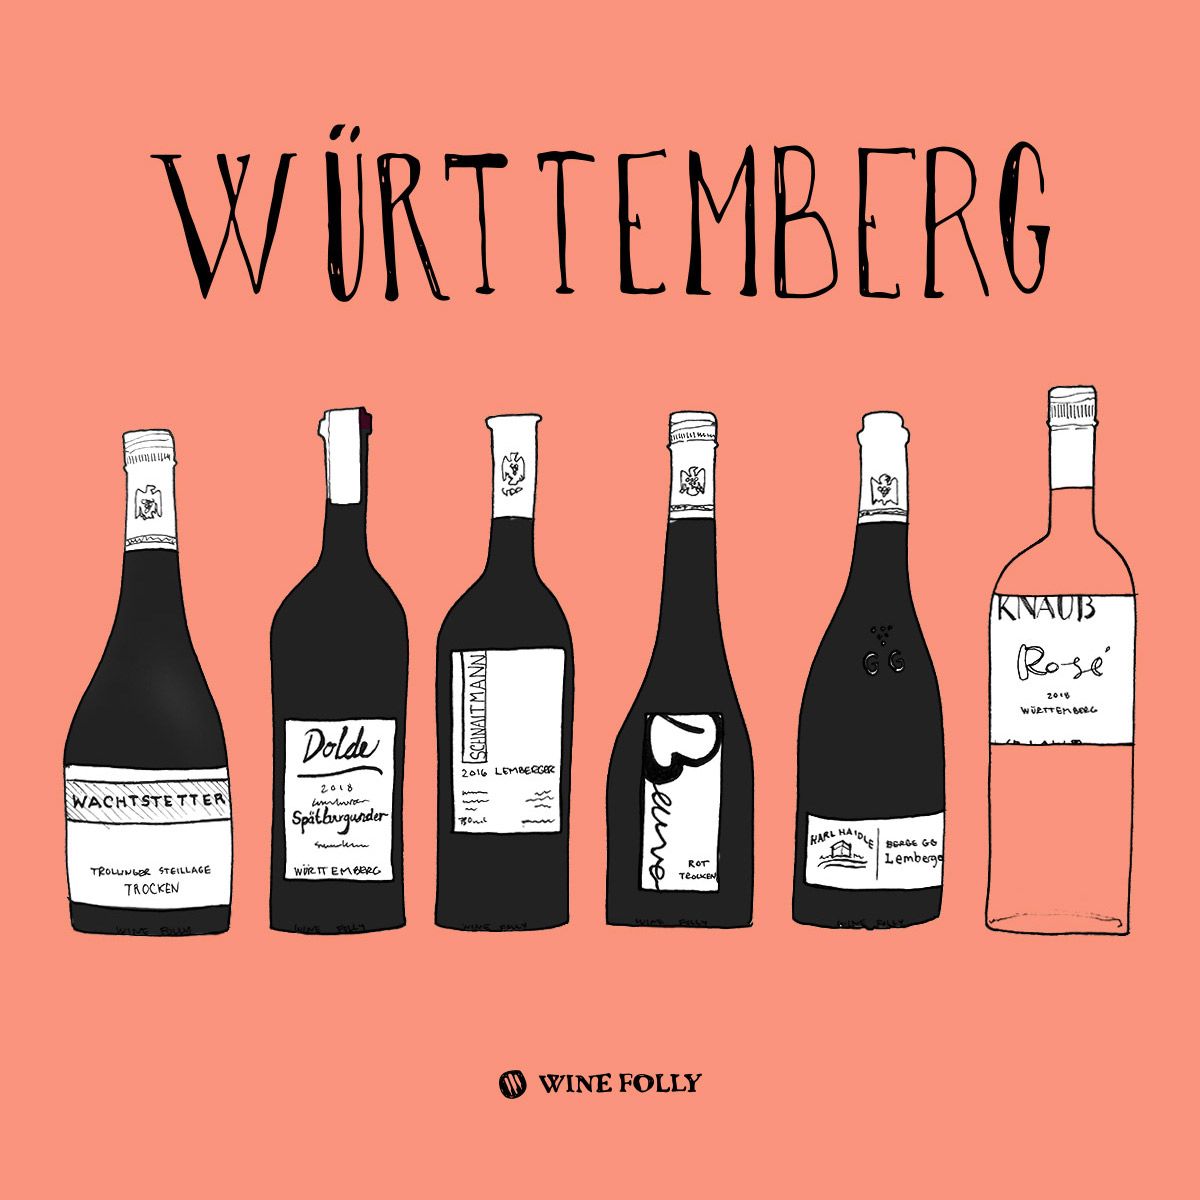 Württemberg German red wines to try